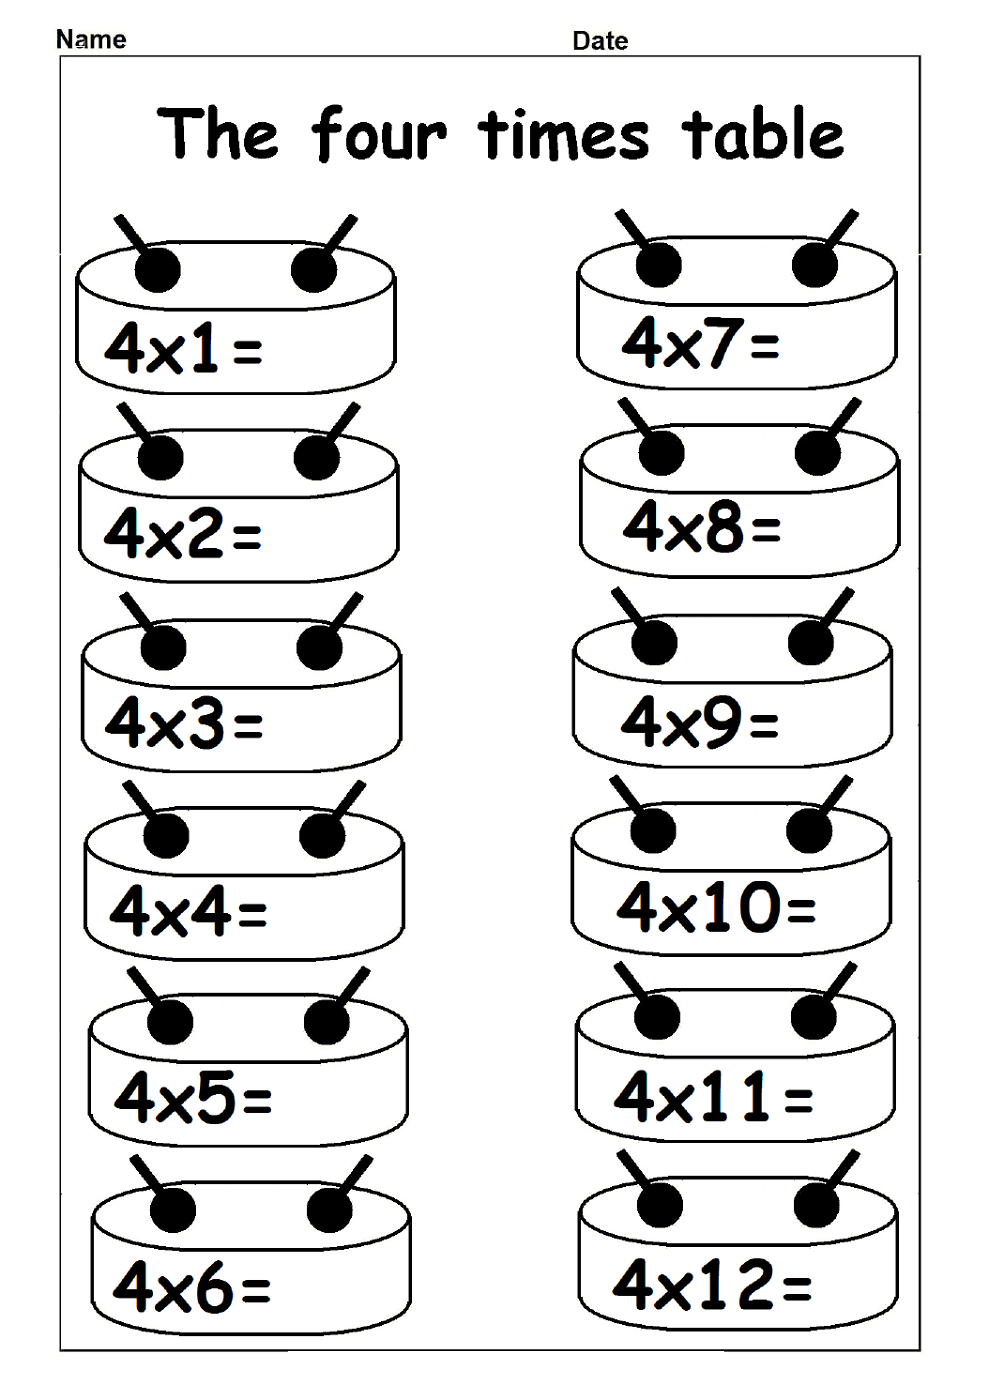 times table worksheets for school